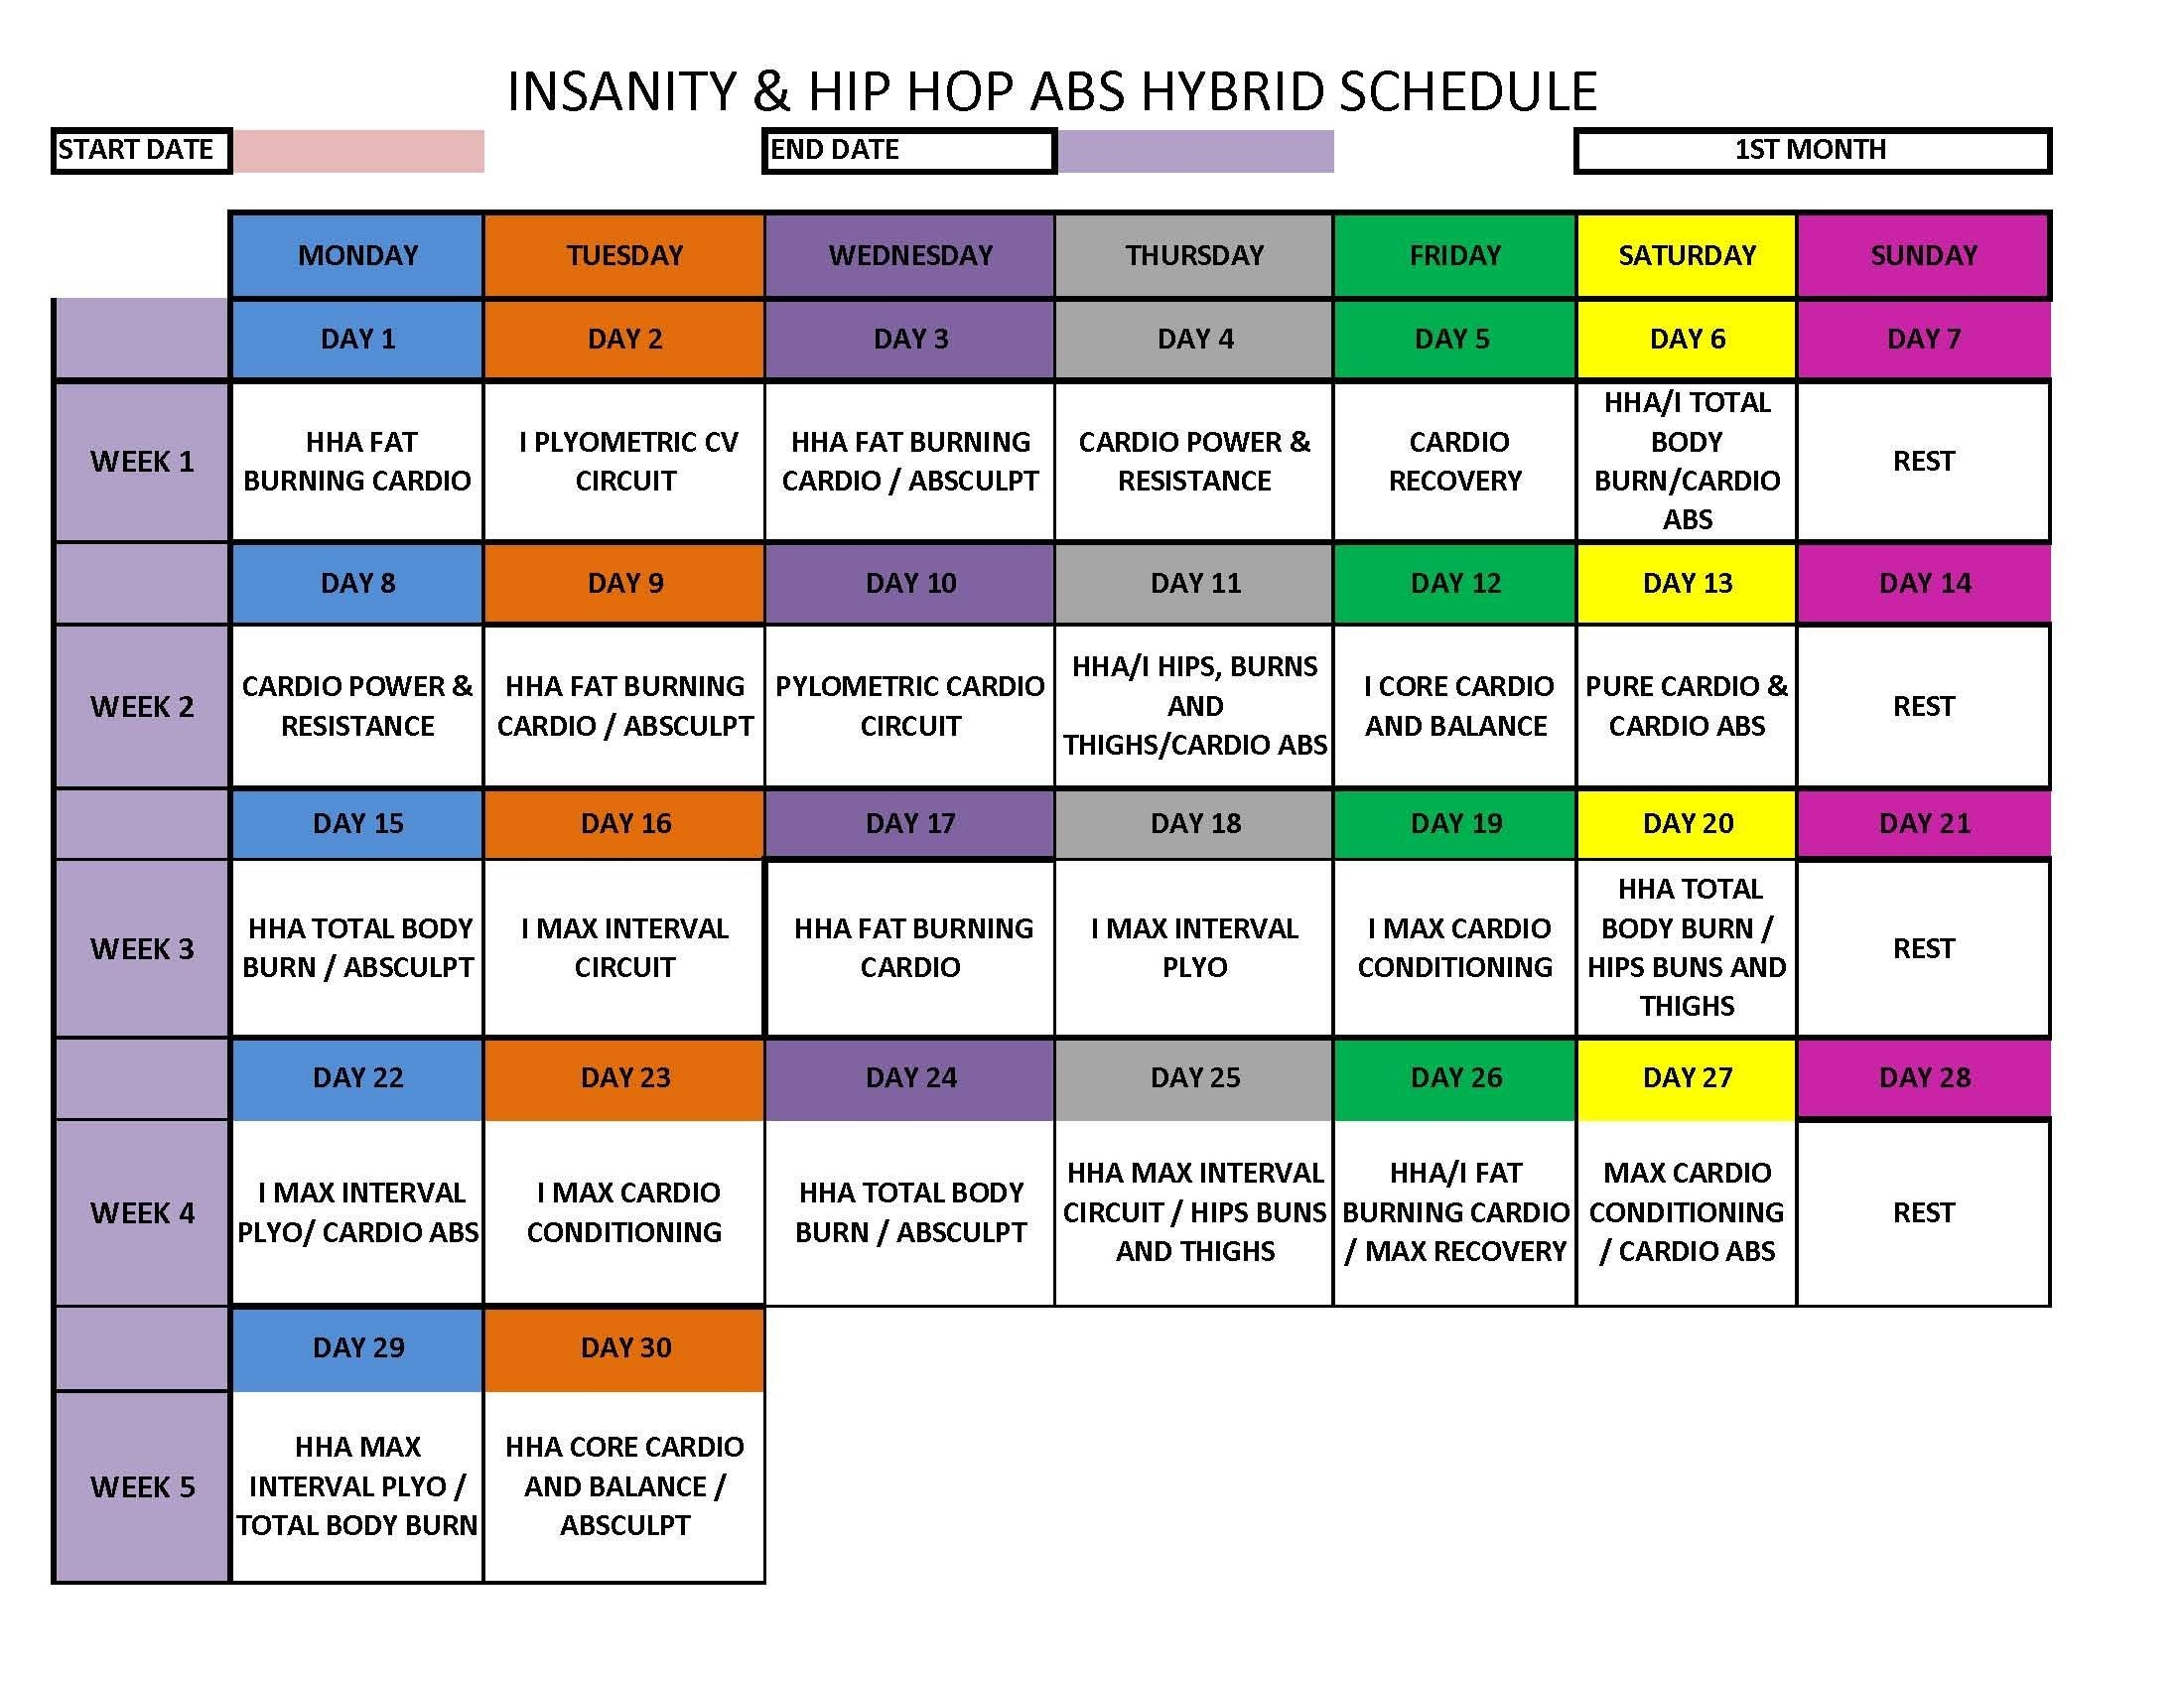 Insanity - Hip Hop Abs Hybrid Schedule | Hip Hop Abs, Hip